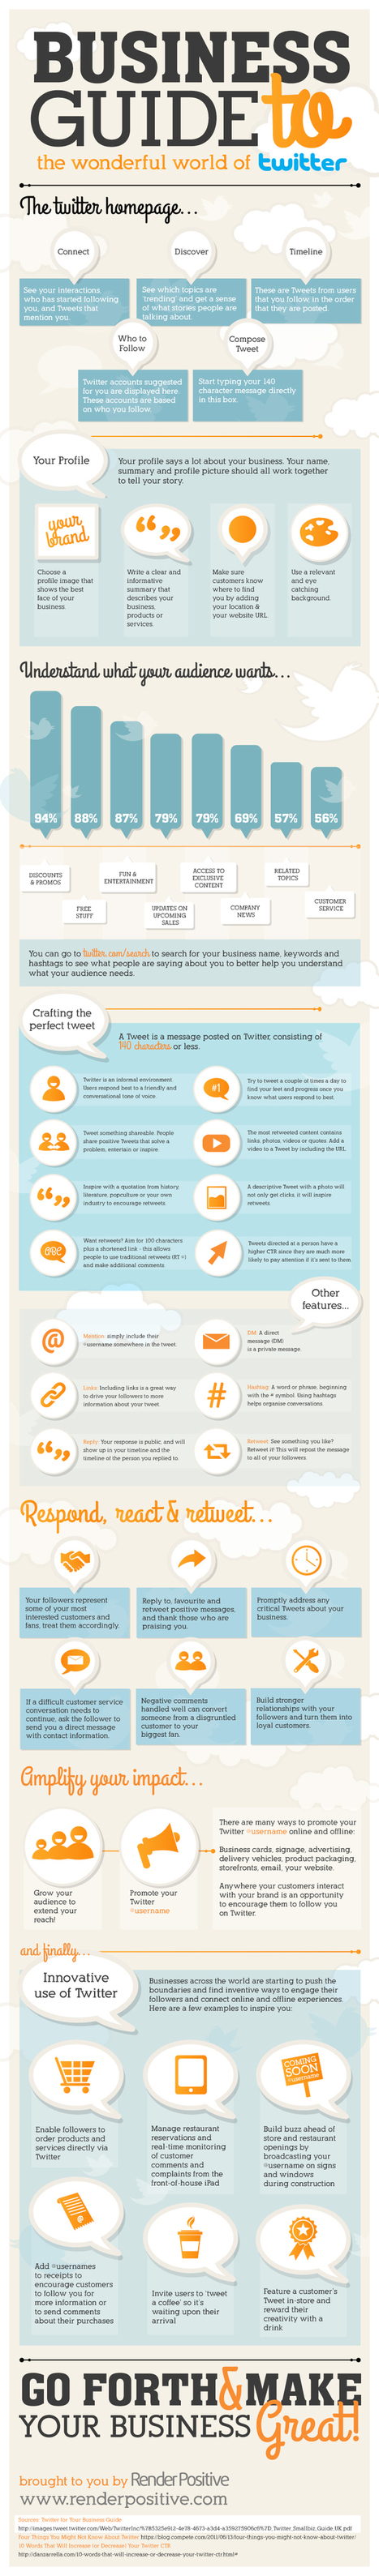 Twitter Guide for New Businesses [infographic] | Wepyirang | Scoop.it